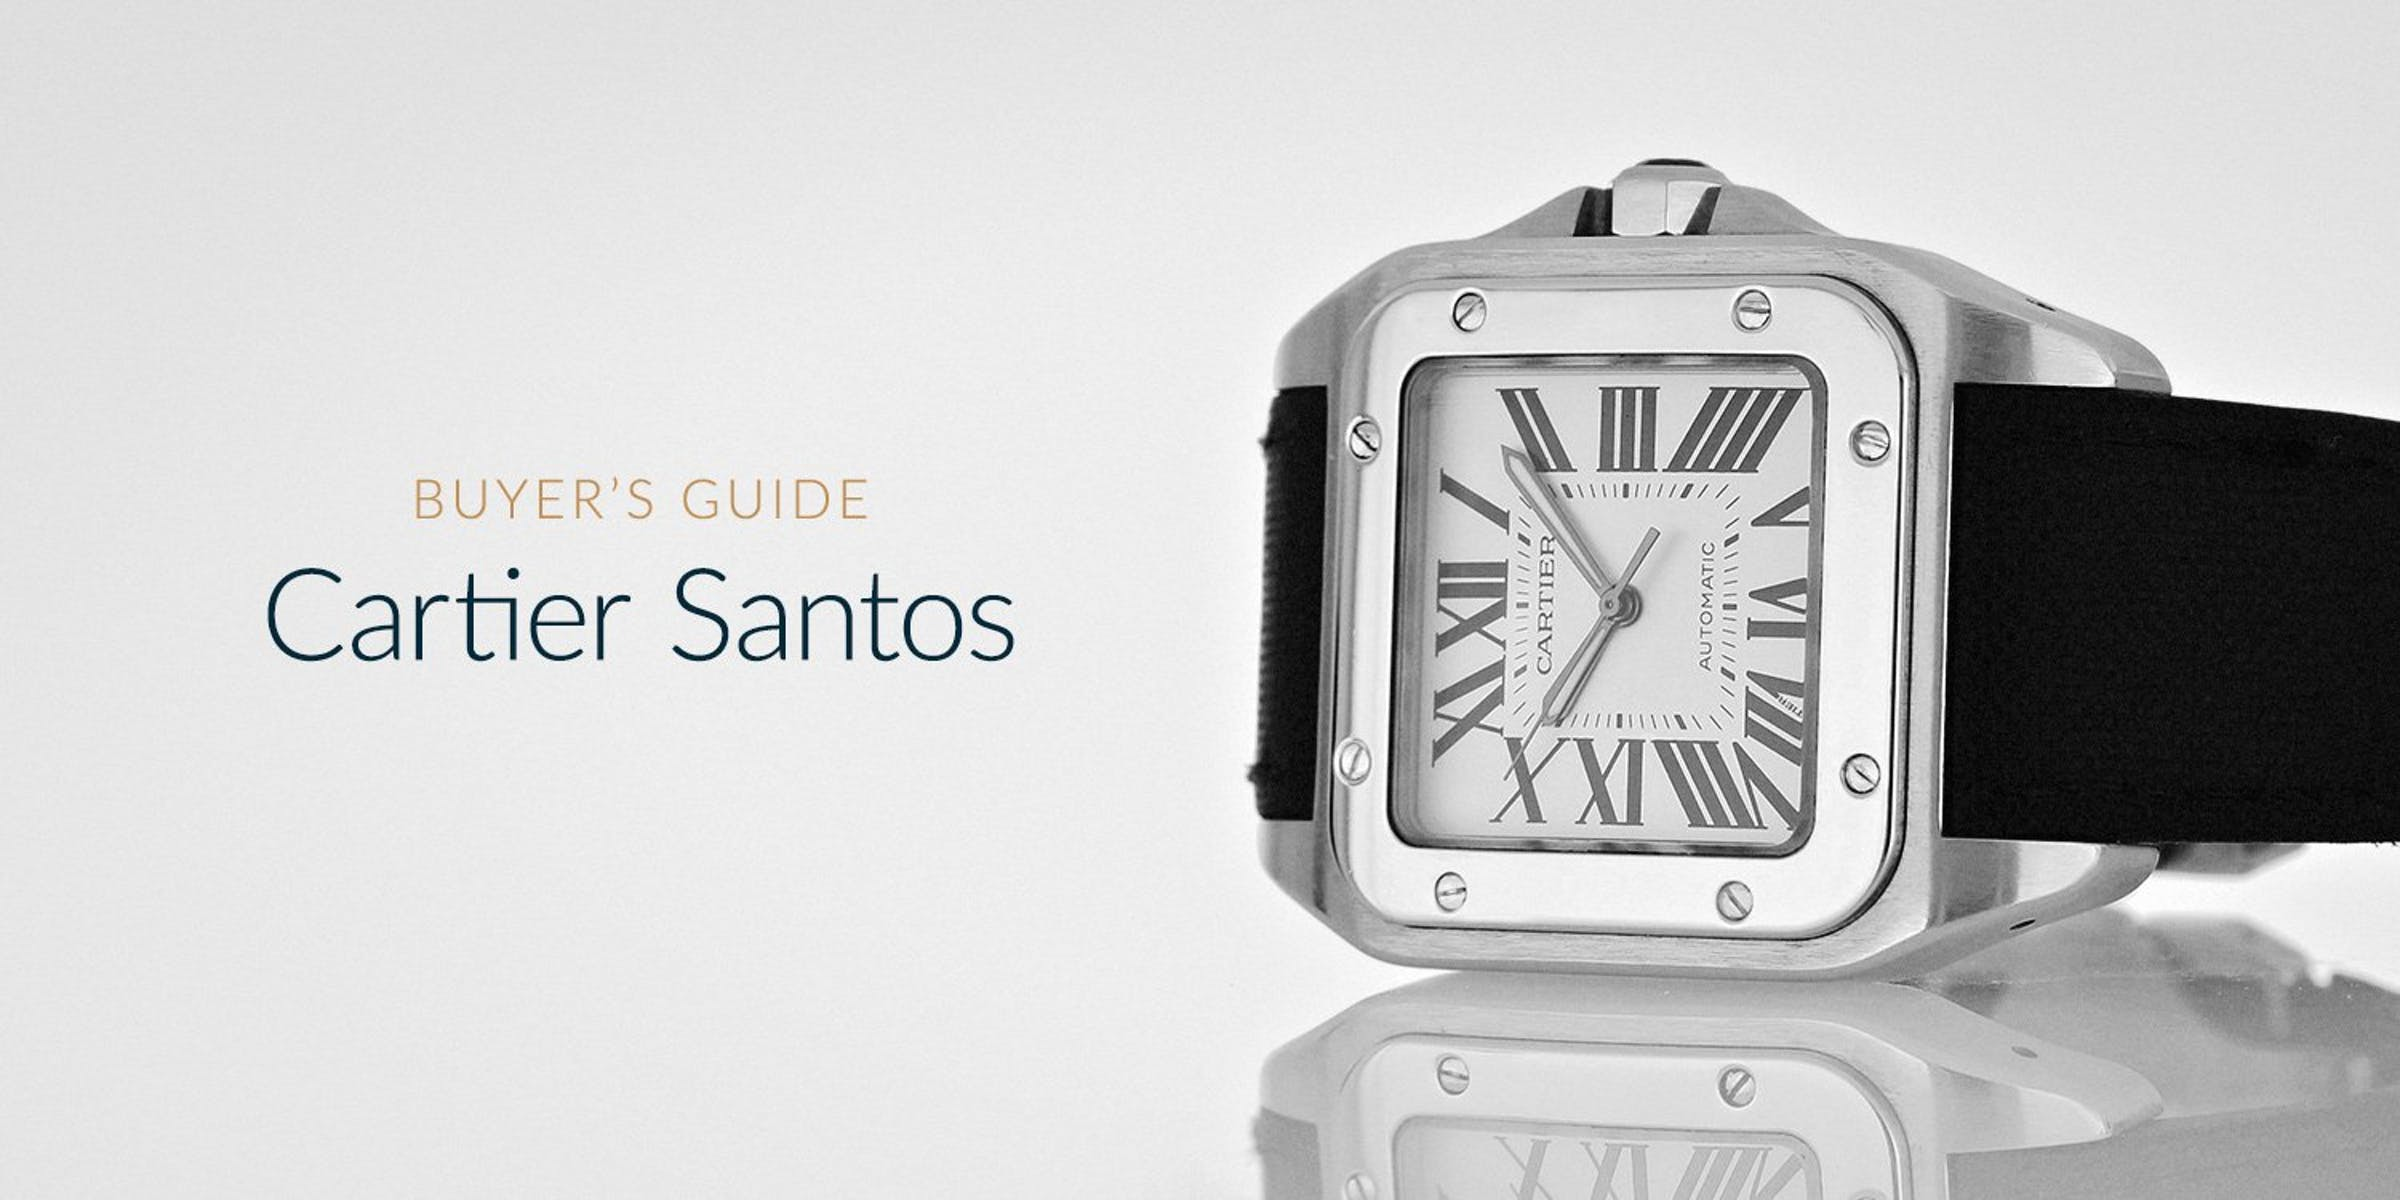 CAM-1387-Buyers-Guide-Cartier-Santos-2-1-EN